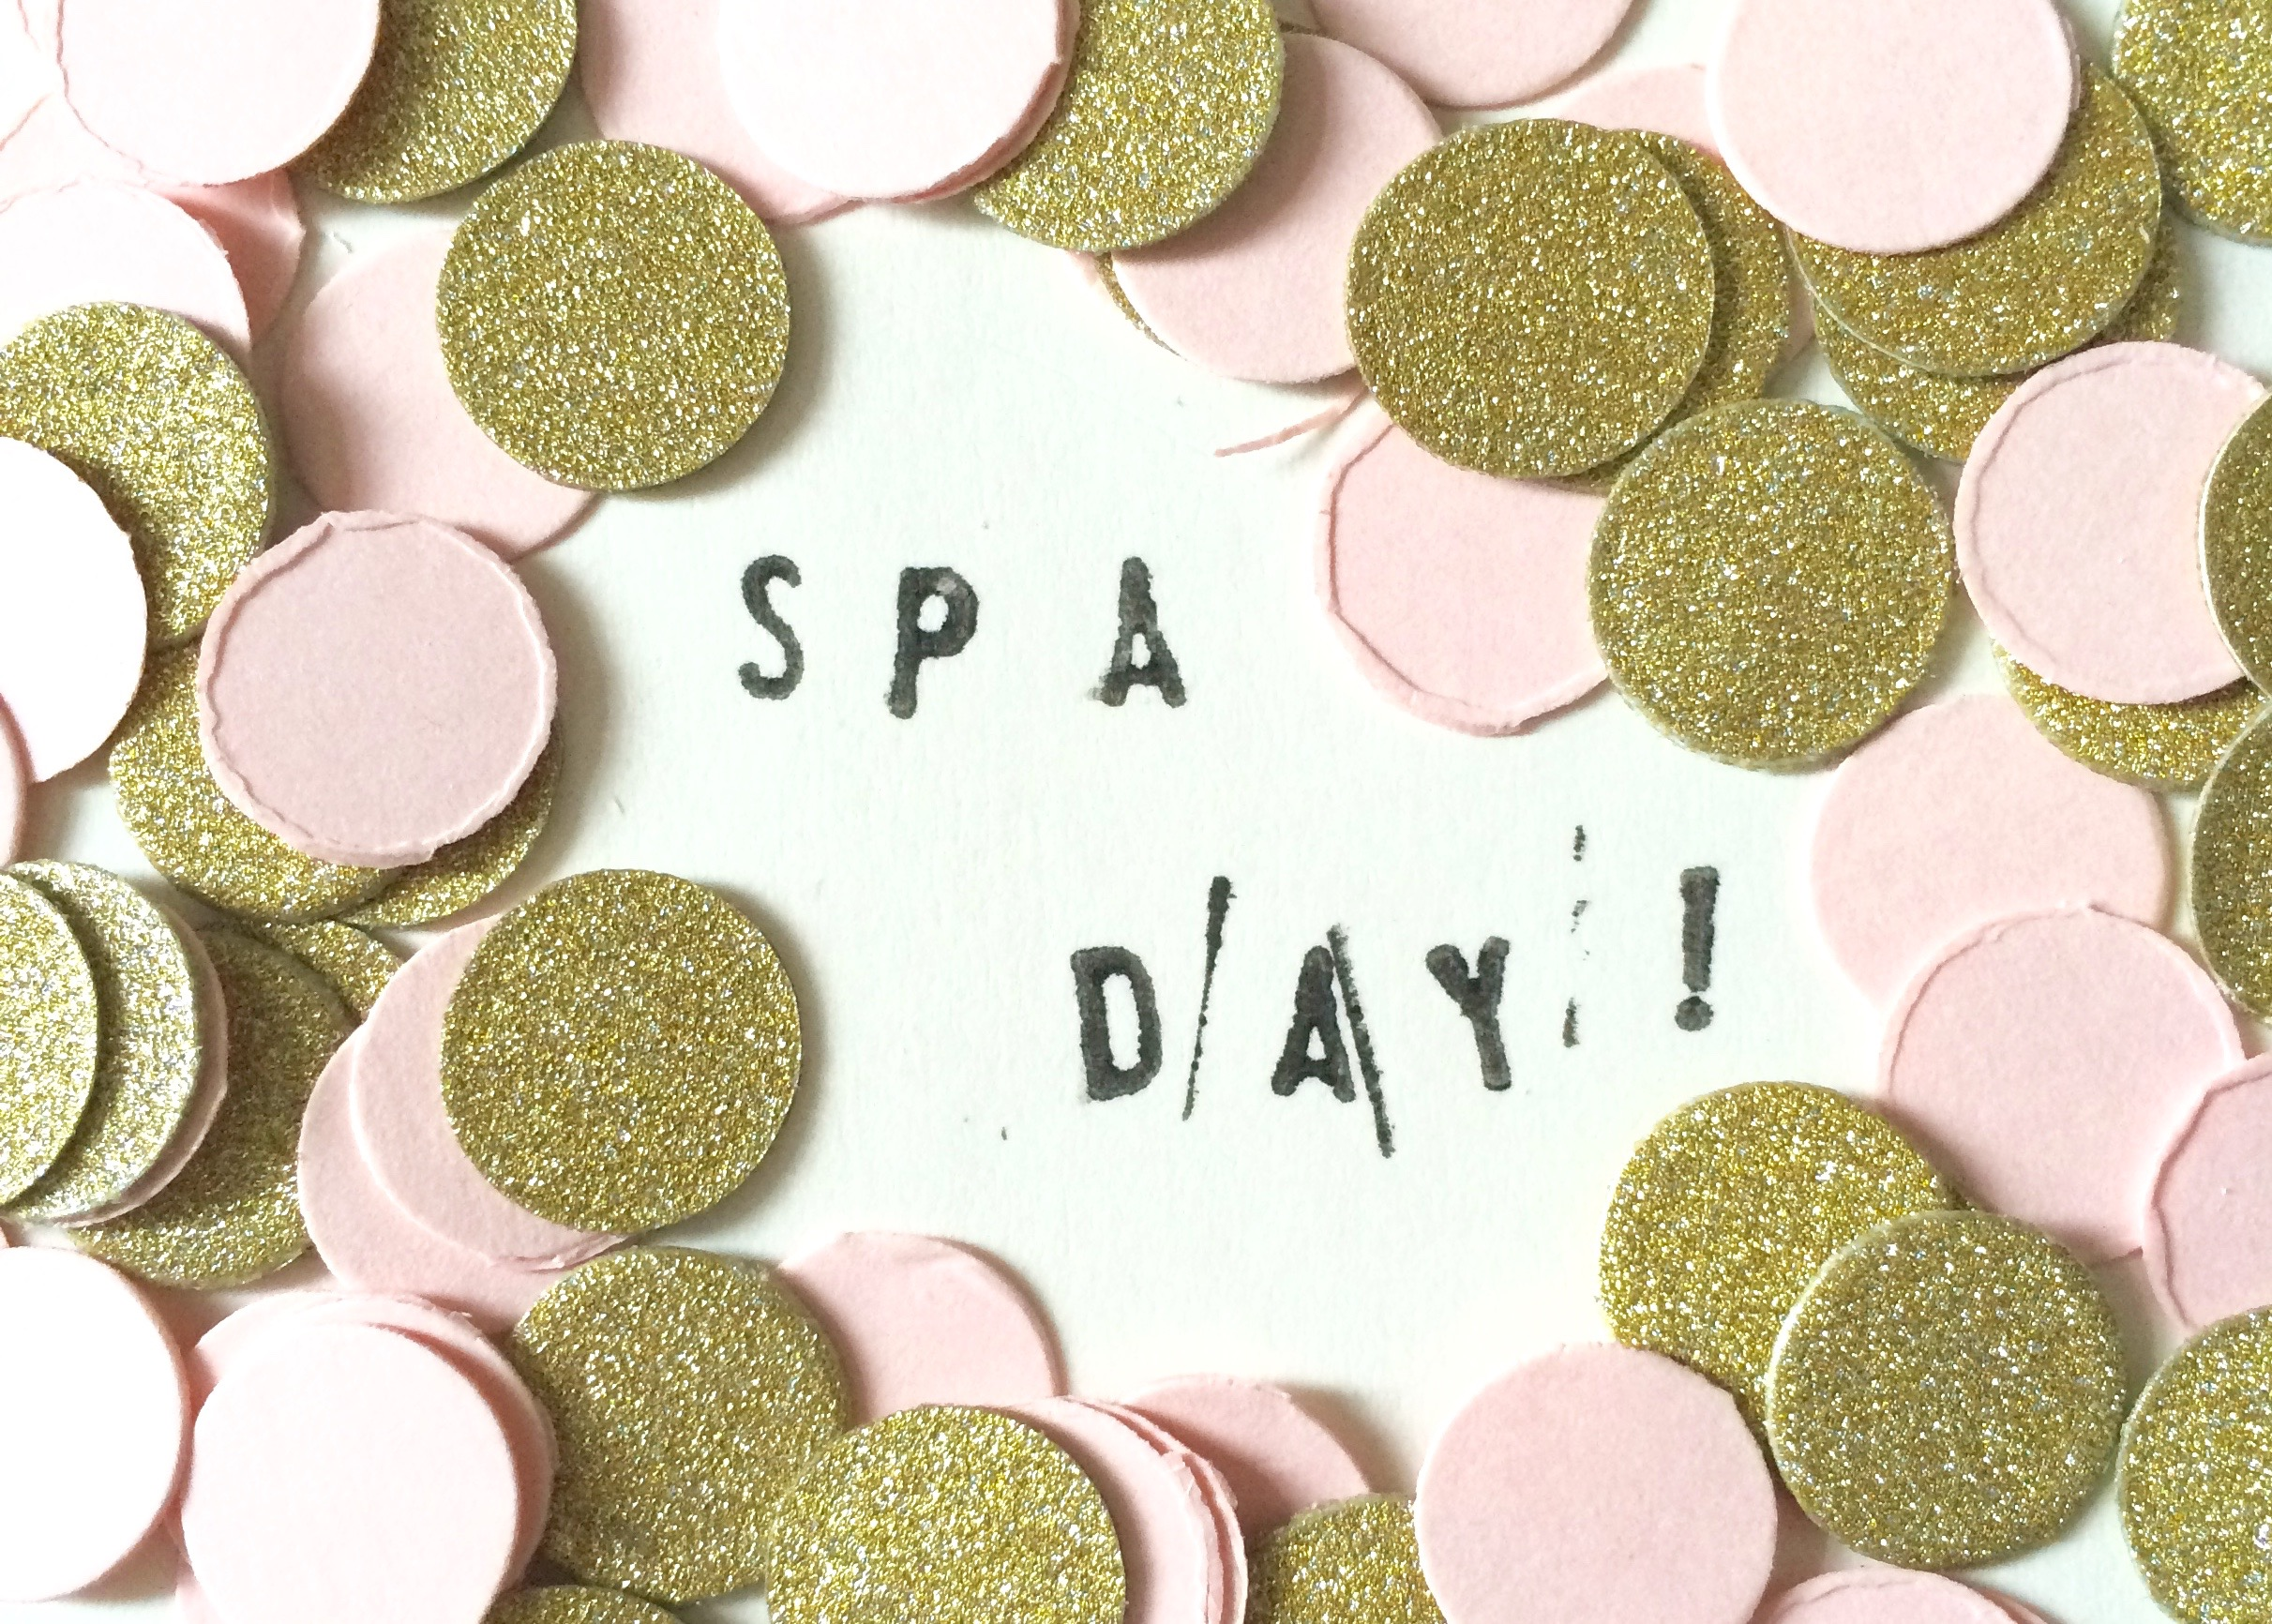 #BEDM Day 3: I Need a Spa Day